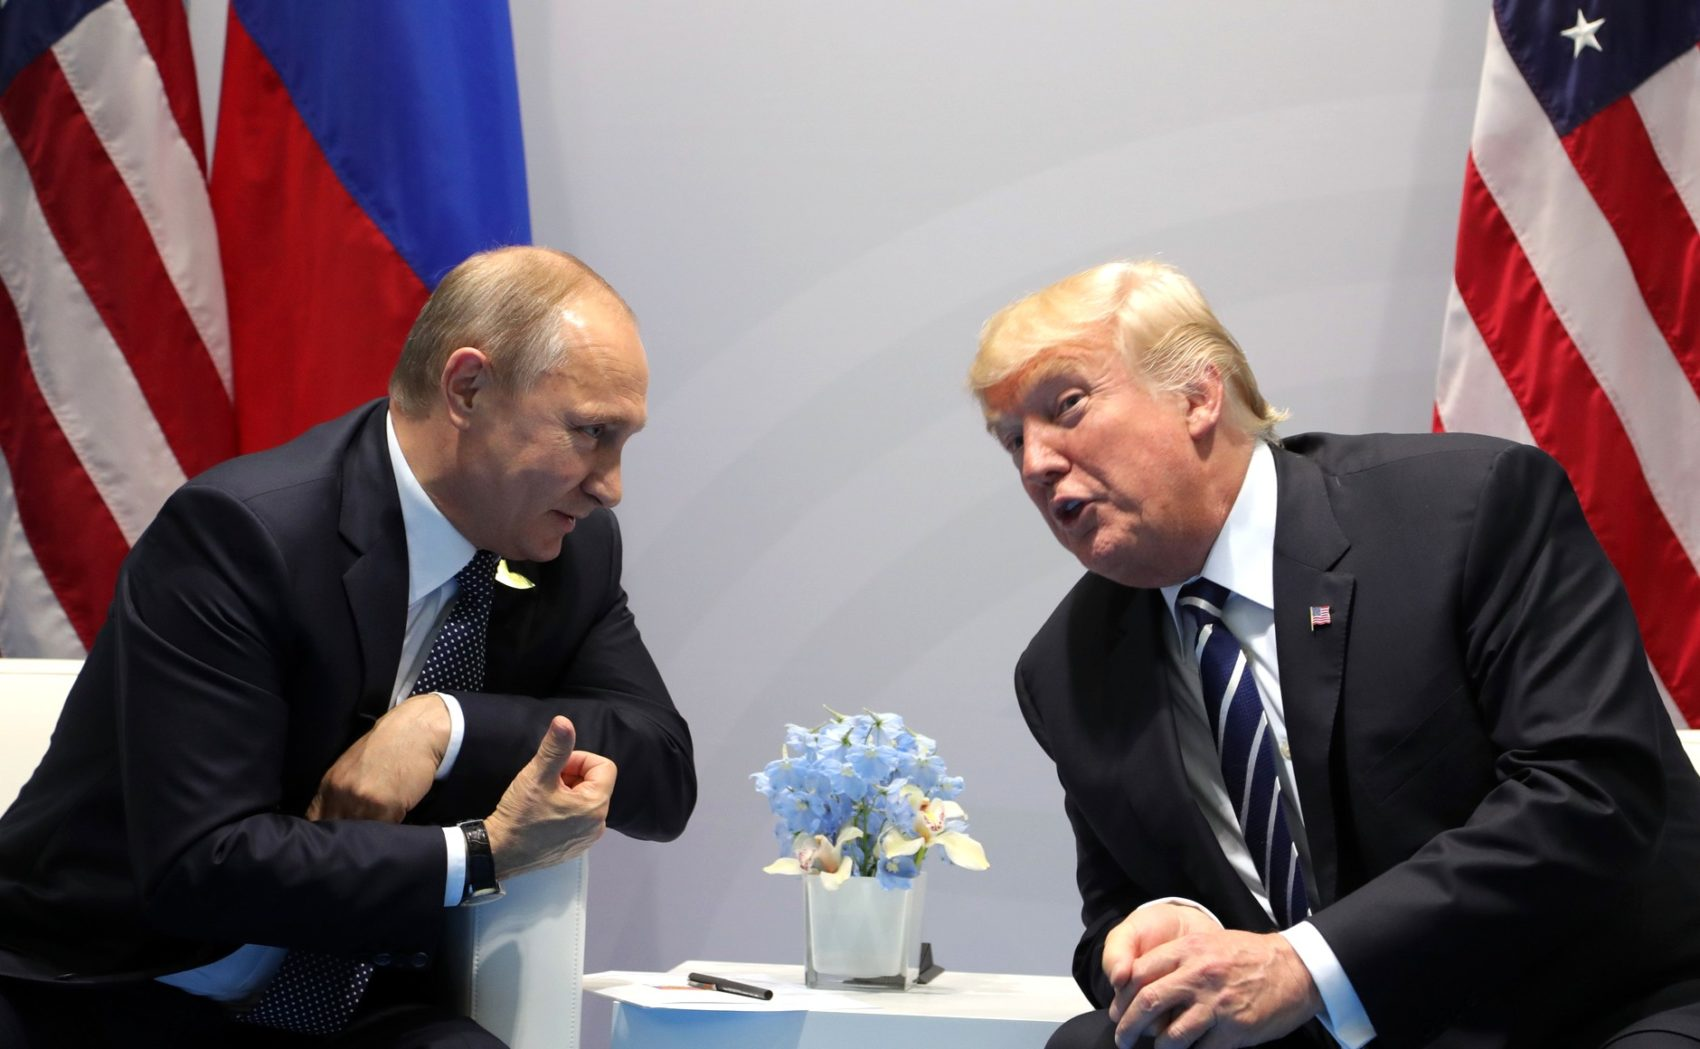 'Putin Is Doing a Happy Dance' as We Speak Because Trump Refuses to Concede